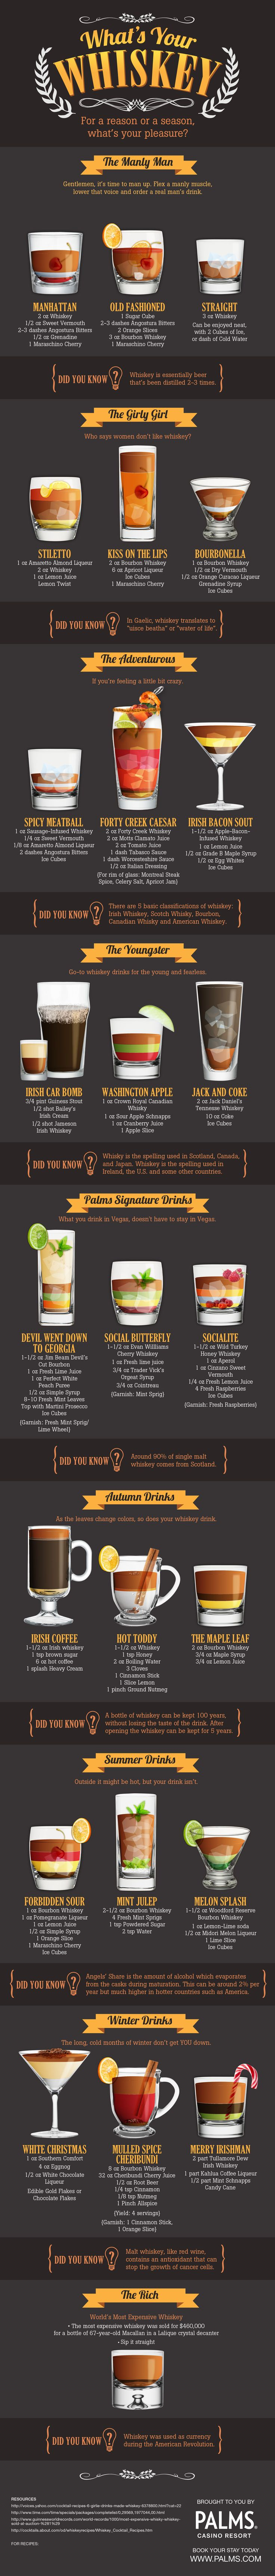 What's Your Favorite Whiskey Drink? #infographic designed by #dezinegirl creative studio for IMI's client Palms Casino & Resort {October 2013}